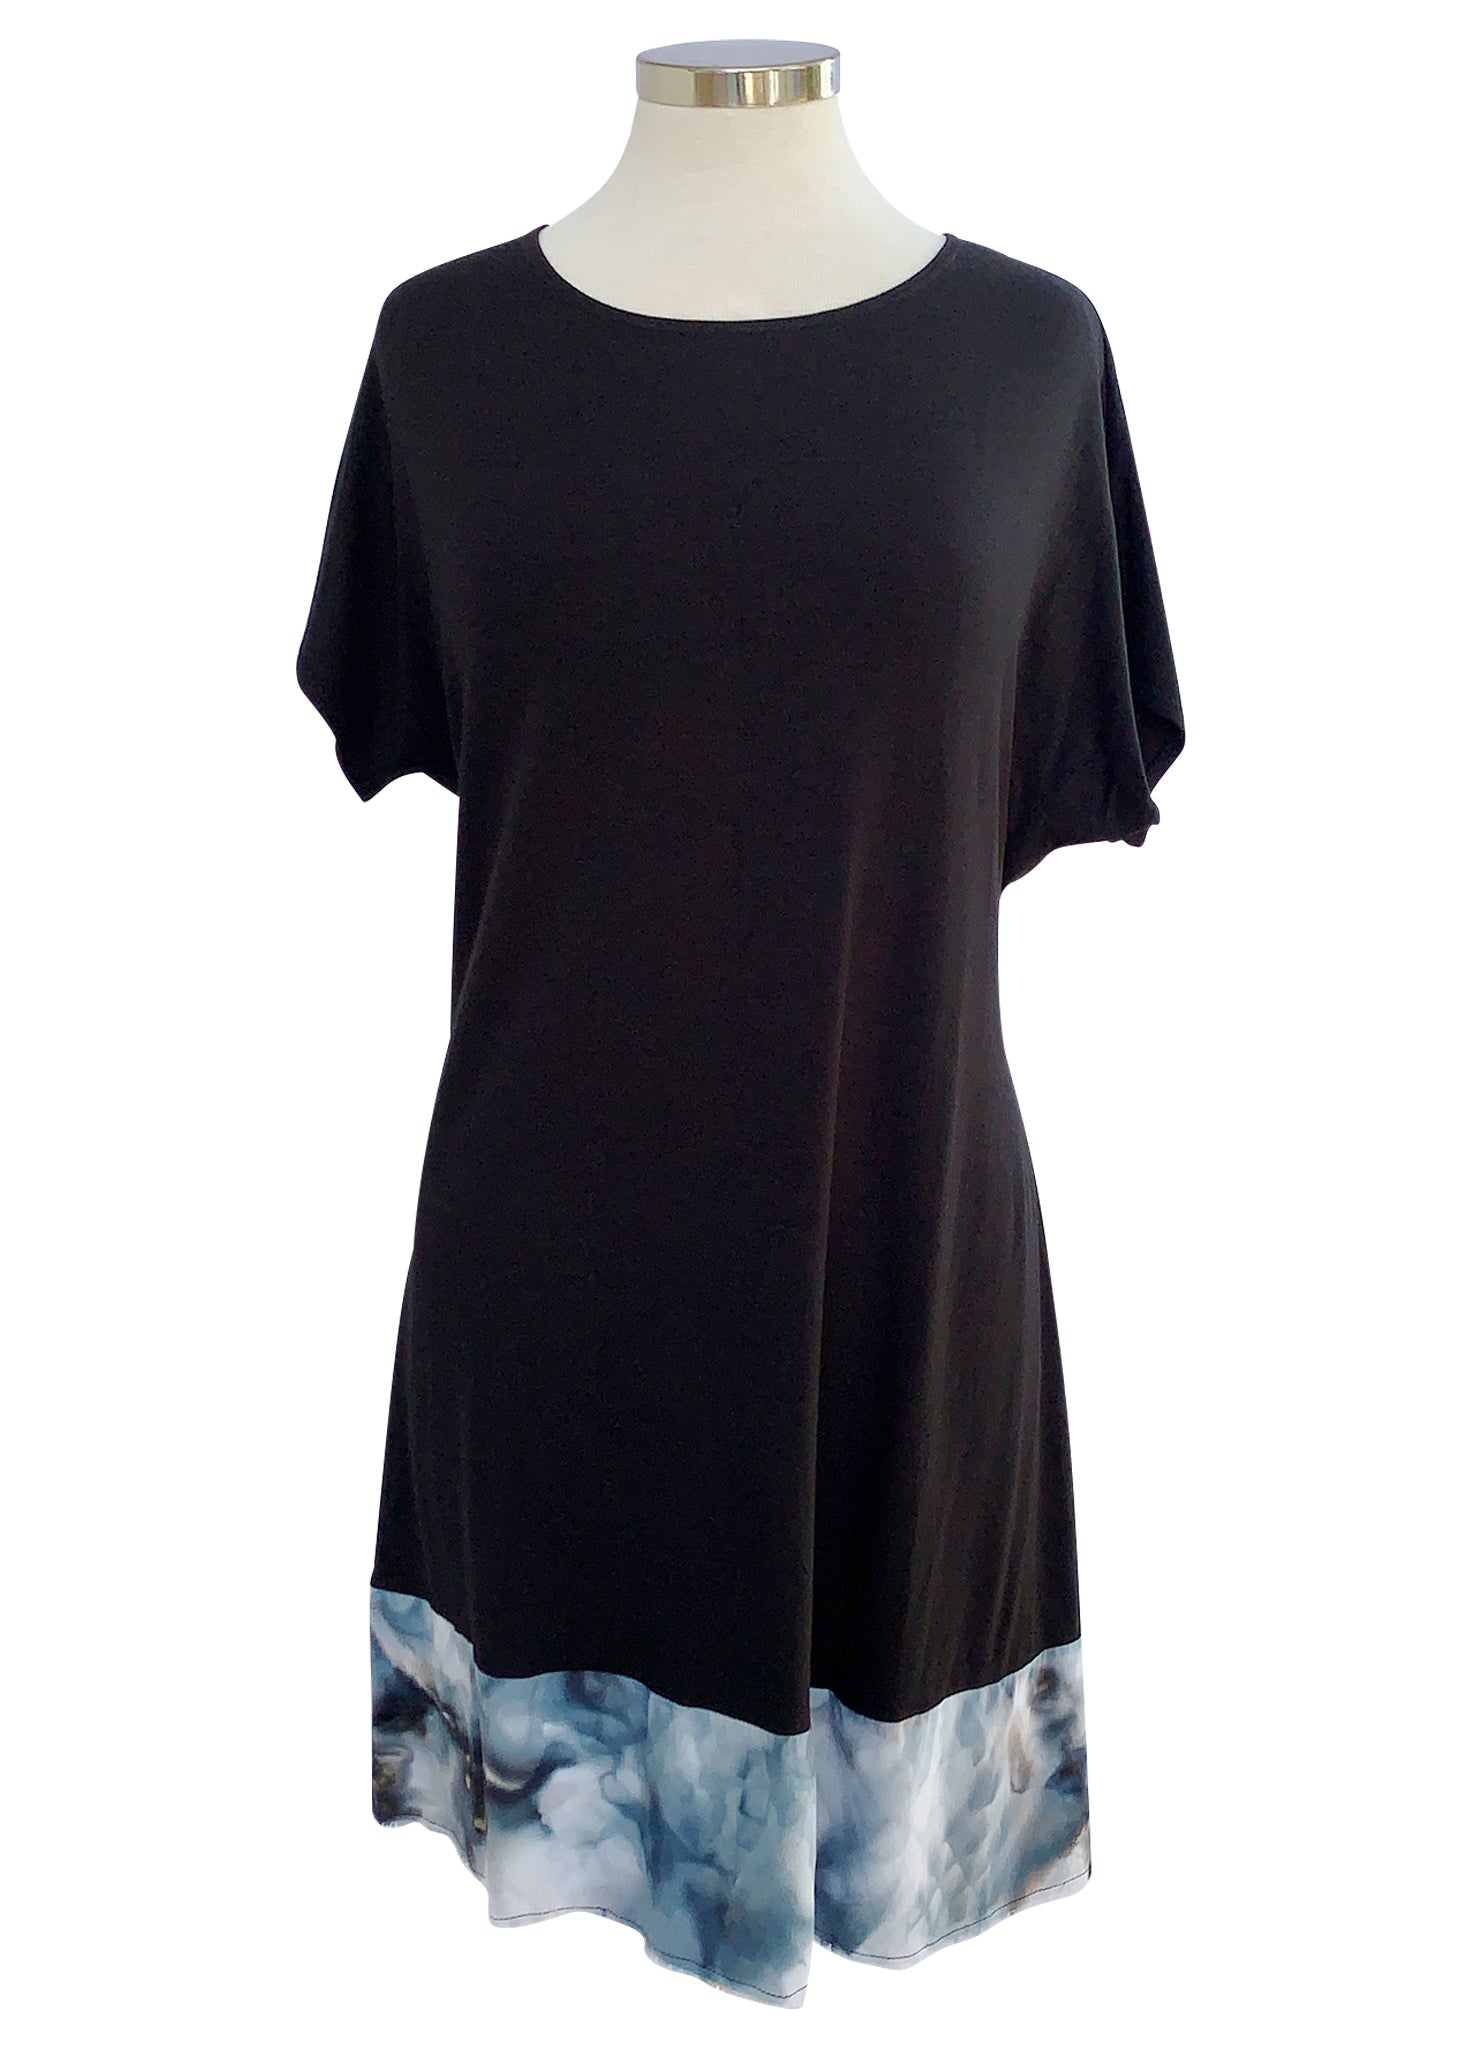 Mixed Fabric Dress - Top - Dyetology